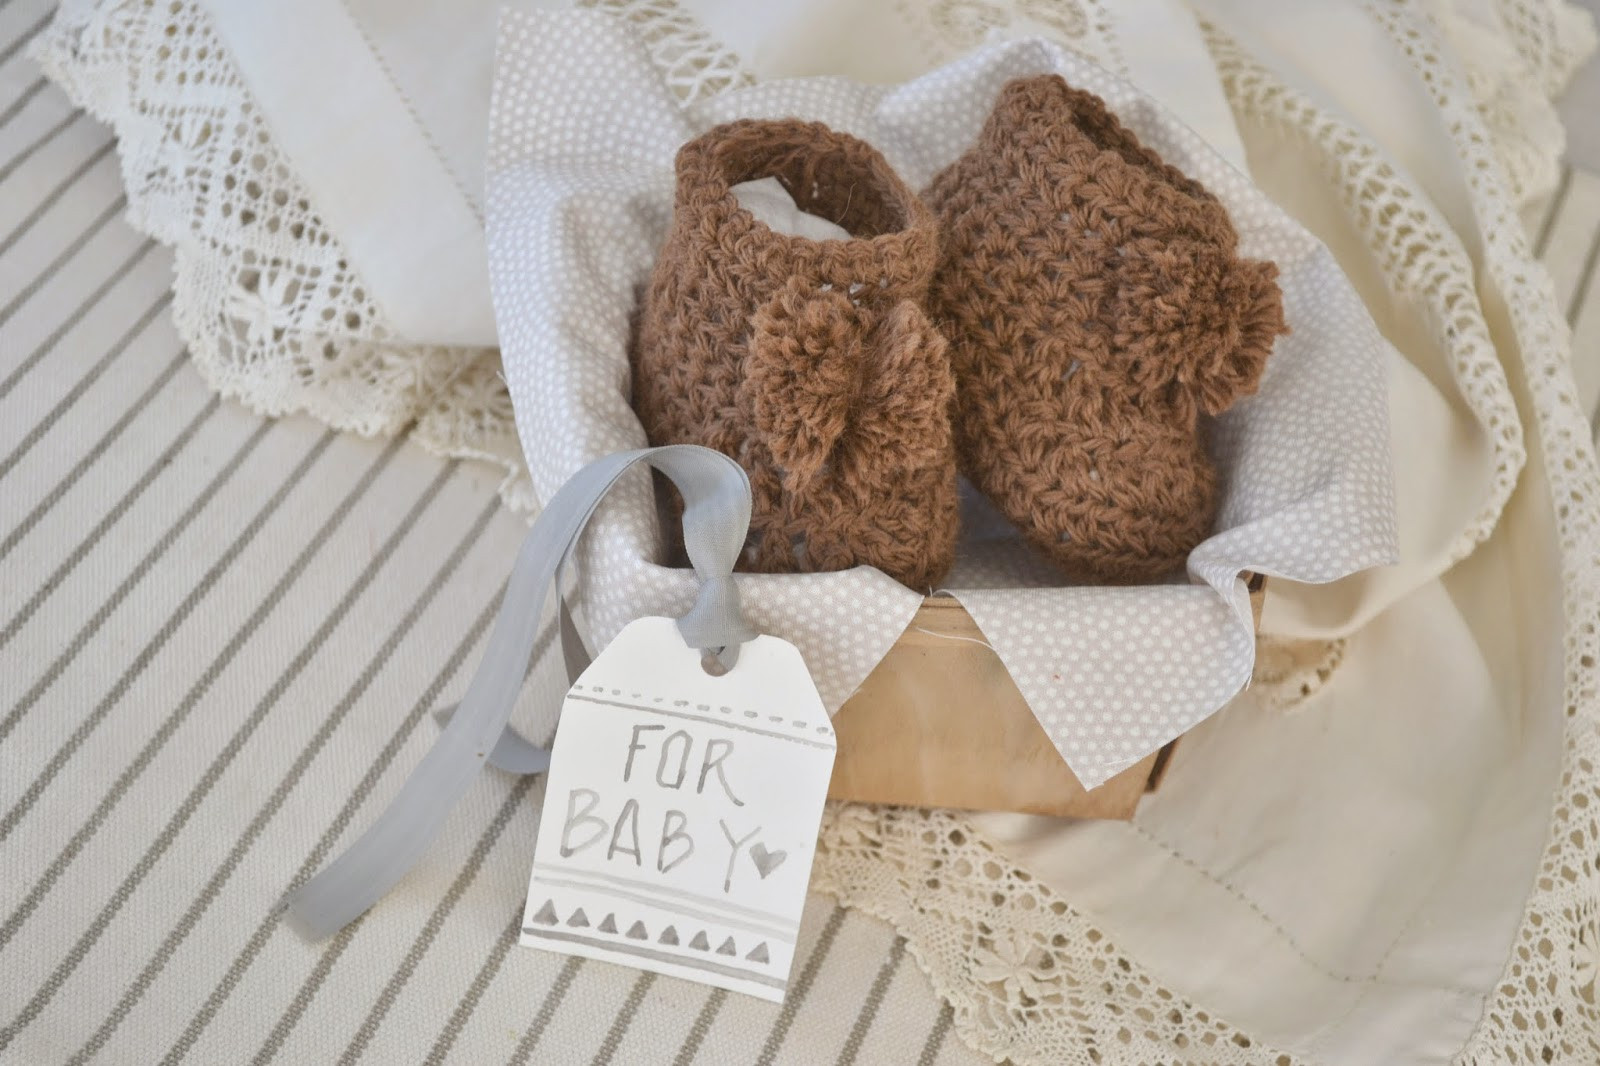 New attic Lace Handmade Baby Gift Crochet Newborn Booties Crochet Baby Gifts Of Brilliant 47 Ideas Crochet Baby Gifts